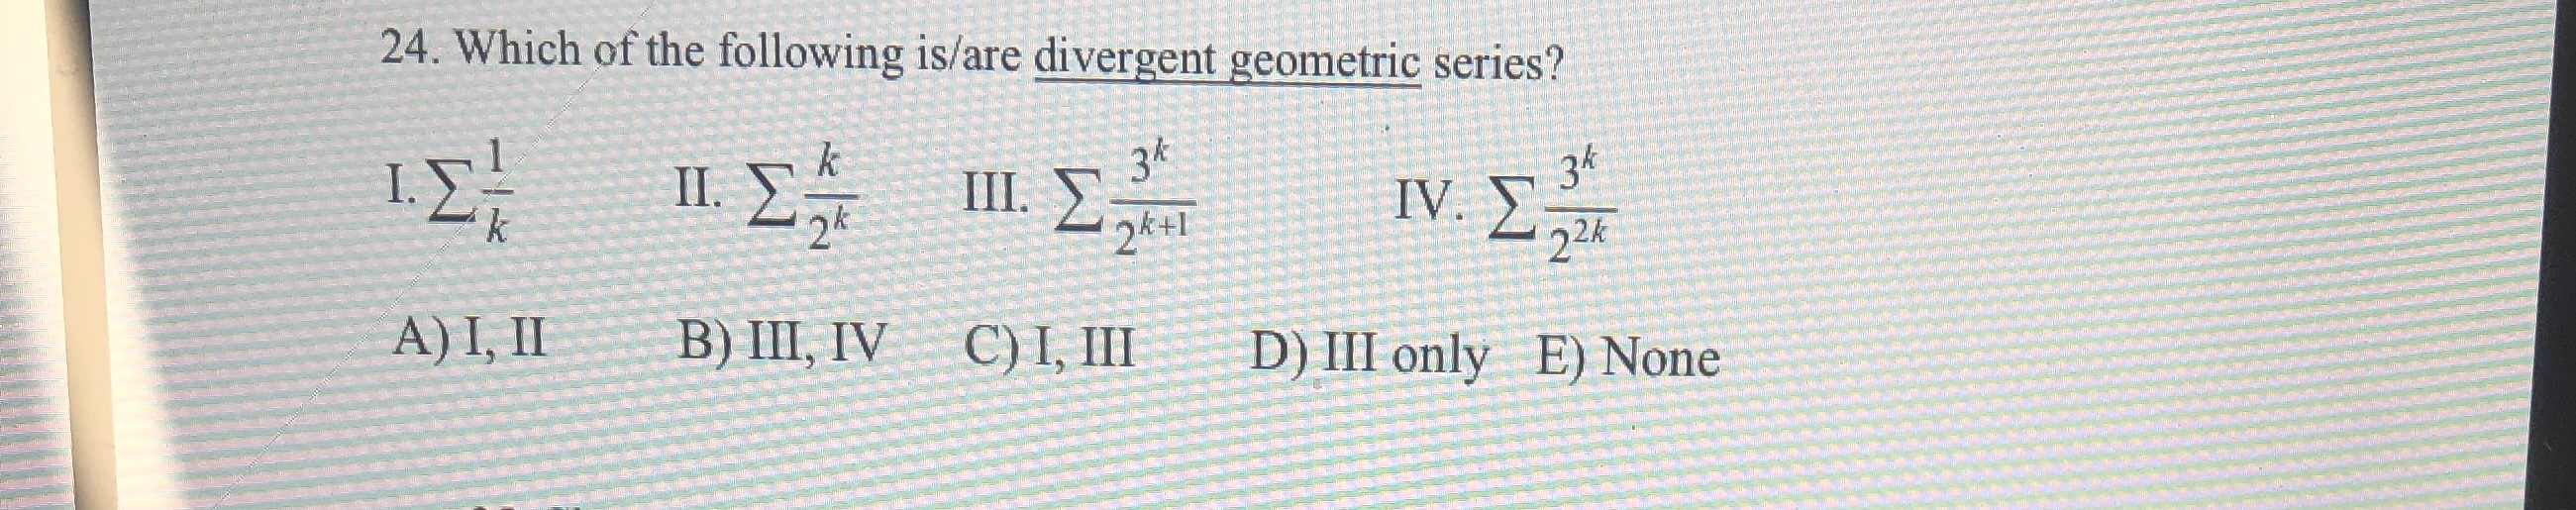 24. Which of the following is/are divergent geometric series? ΙΣ 1Σ 34 k 36 IV. Σ II. 24 III. 2k+I 22K A) I, II B) III, IV C) I, III D) III only E) None